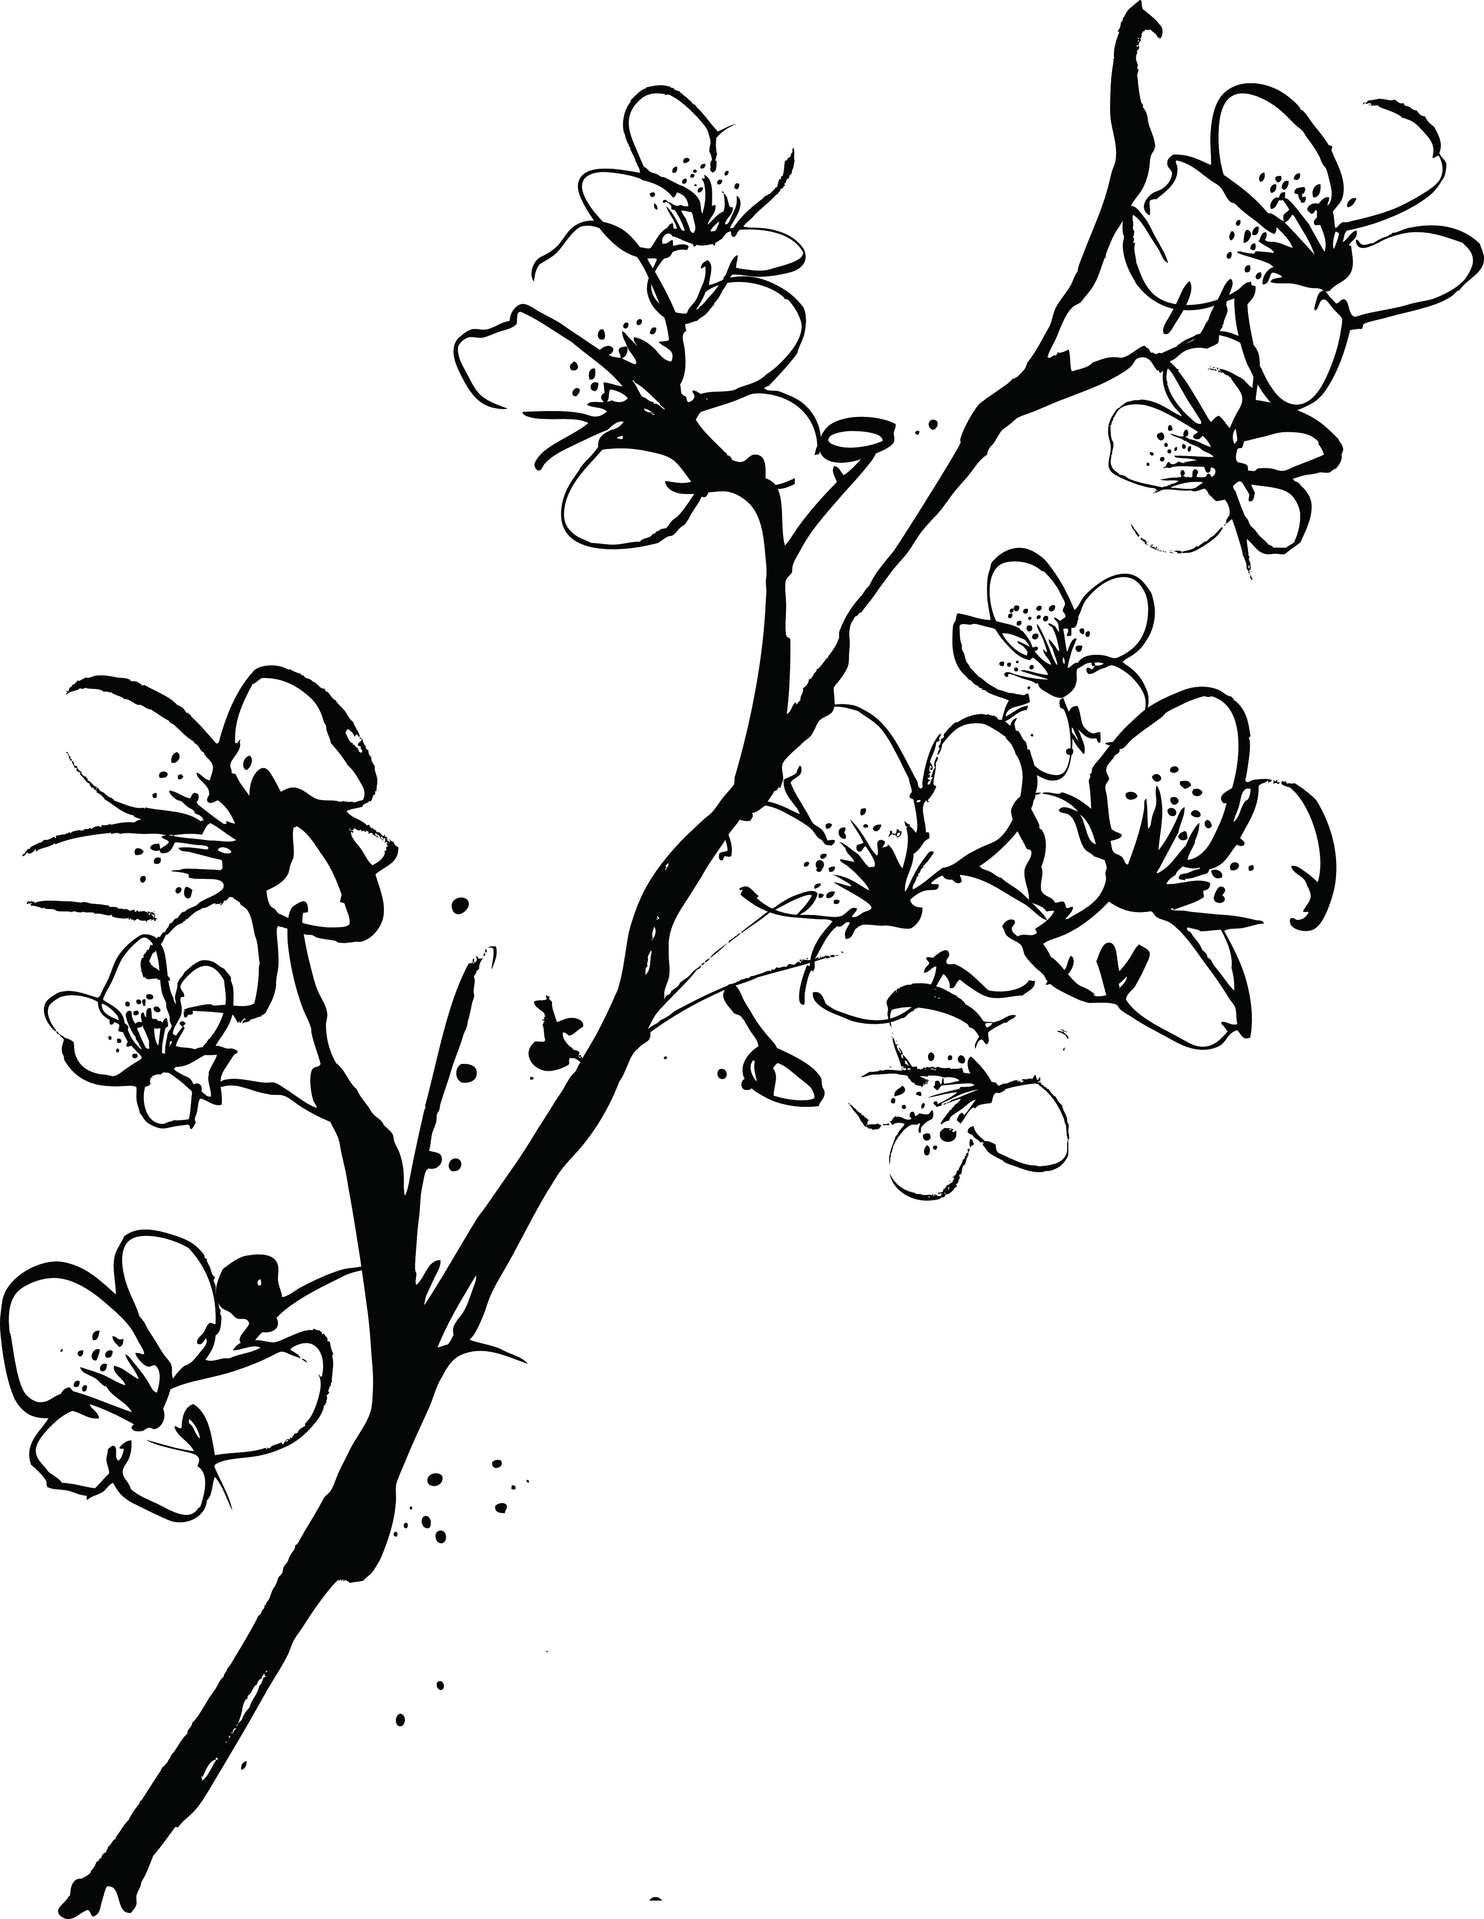 cherry blossom tree drawing cherry blossoms tree drawing at getdrawings free download blossom cherry drawing tree